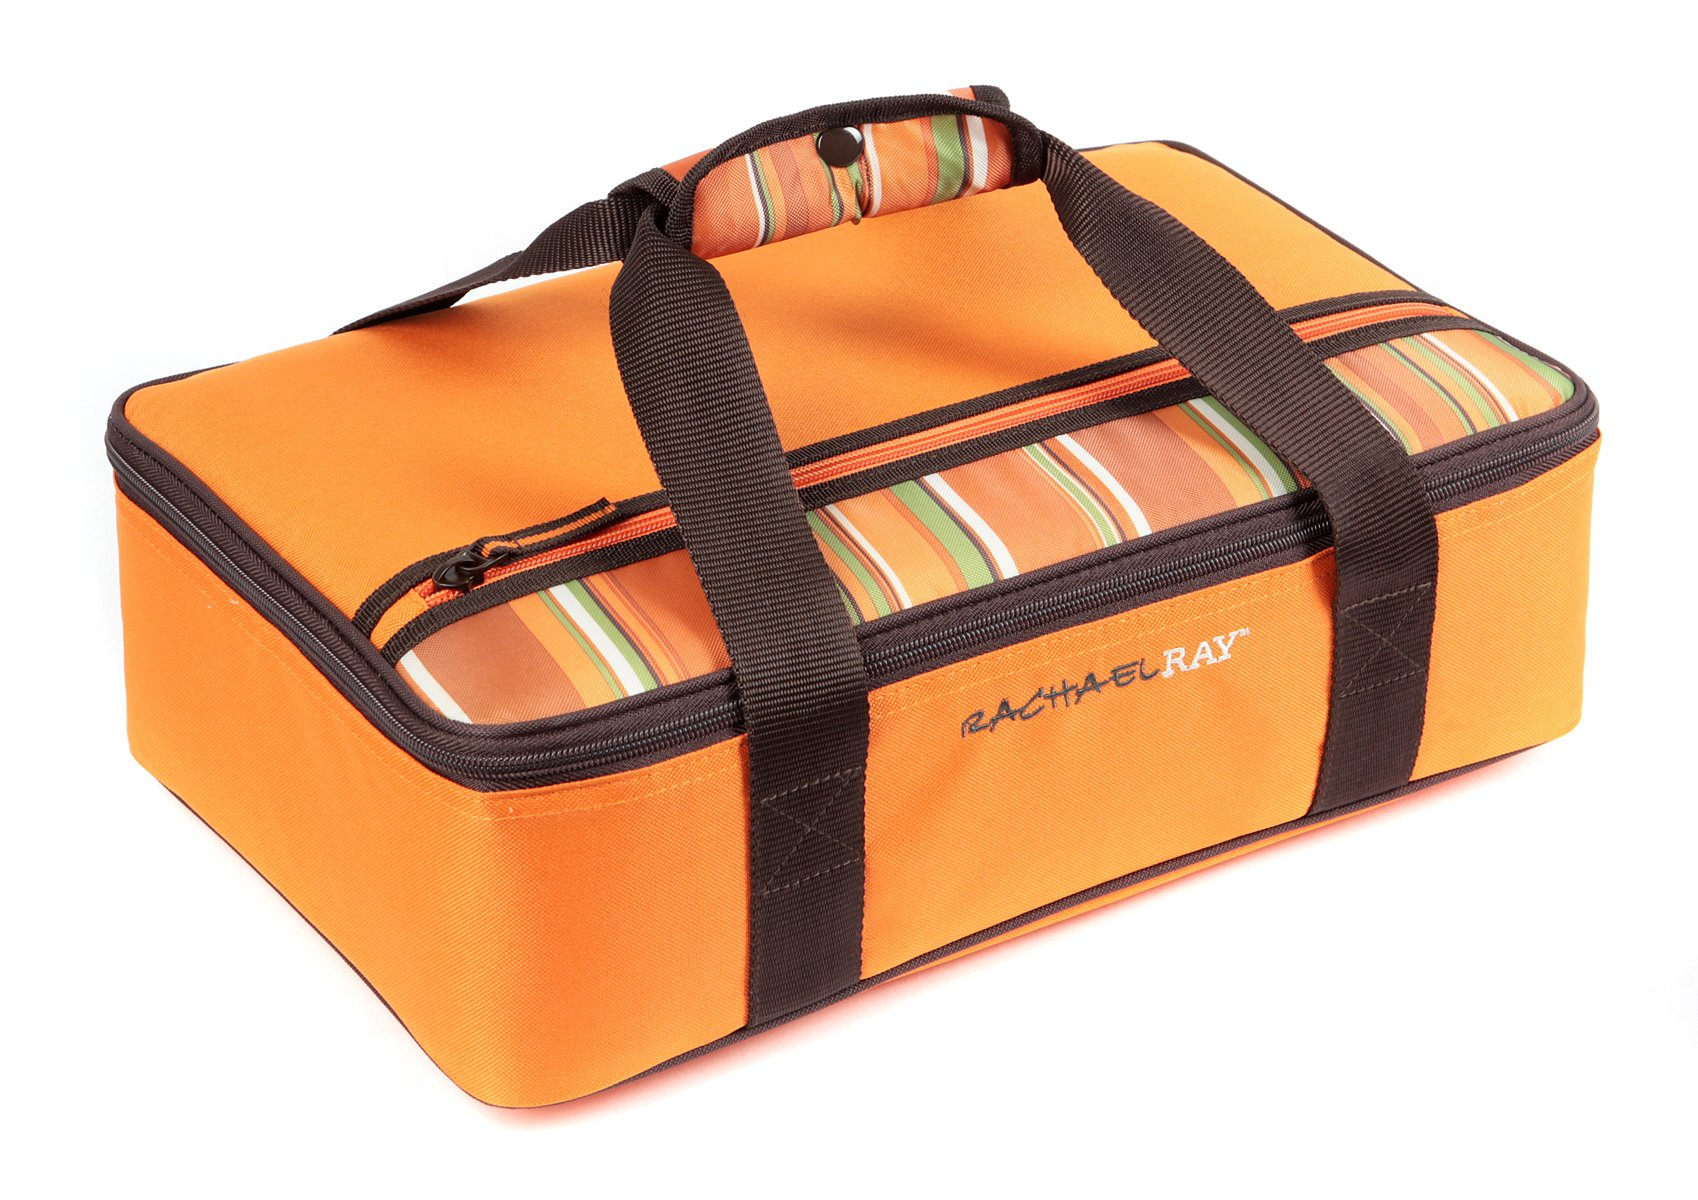 Rachael Ray Lasagna Lugger, Insulated Casserole Carrier for Potluck Parties, Picnics, Tailgates - Fits 9''x13'' Baking Dish, Orange